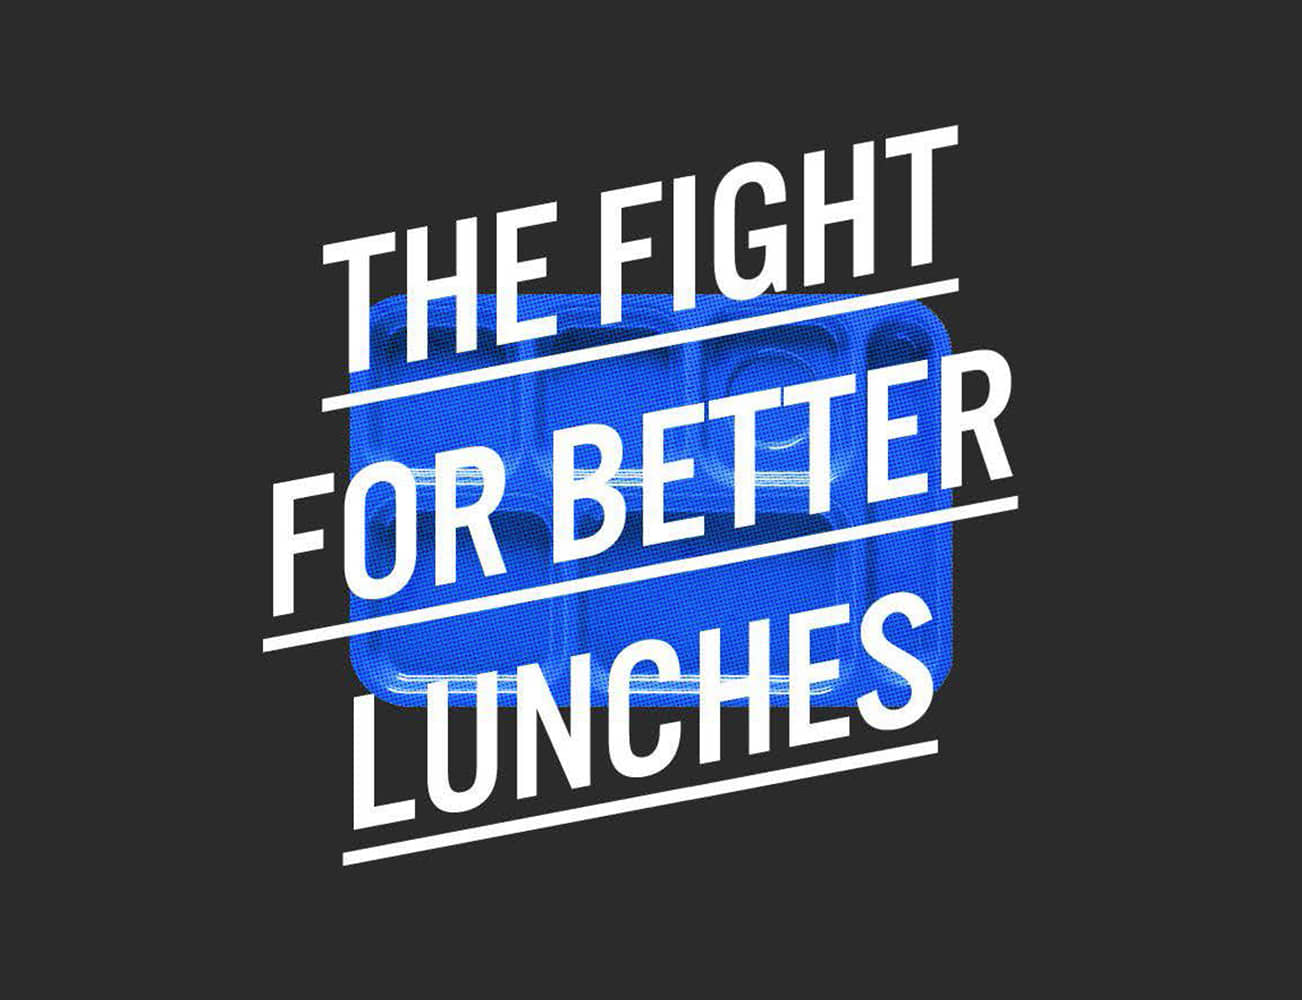 #EatIt: The Fight for a Better School Lunch